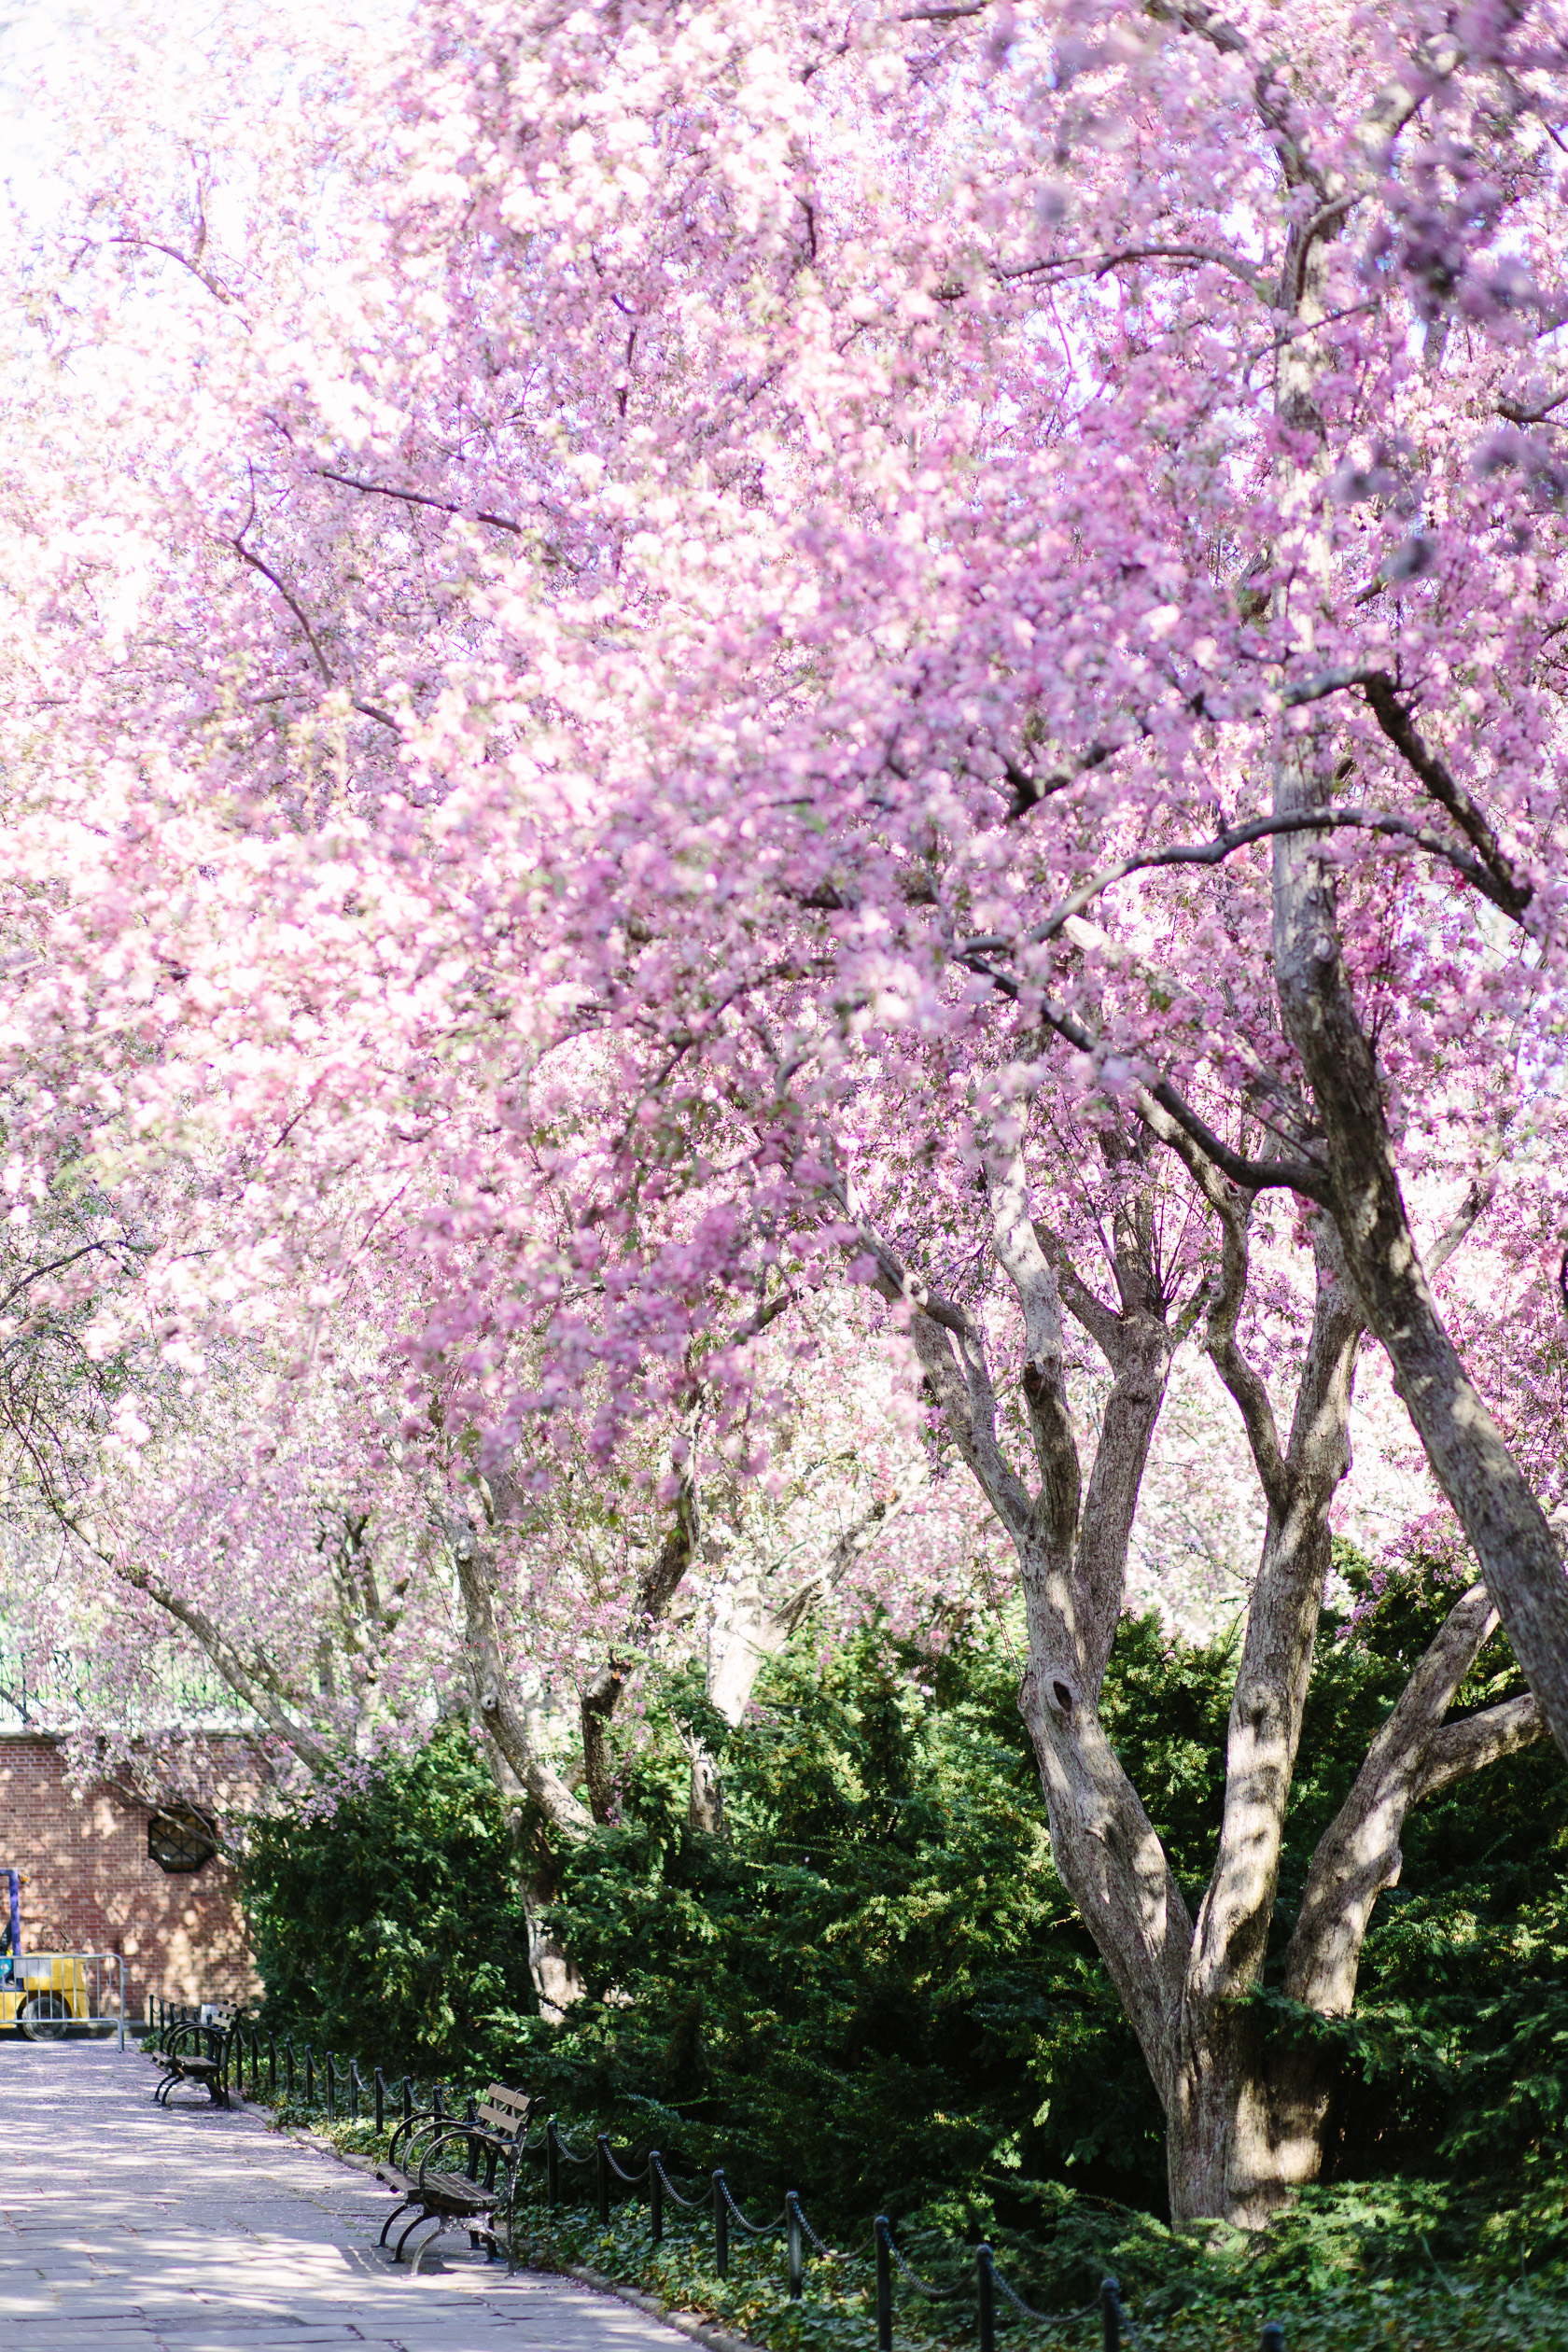 5 Reasons To Visit the Central Park Conservatory Garden in Spring